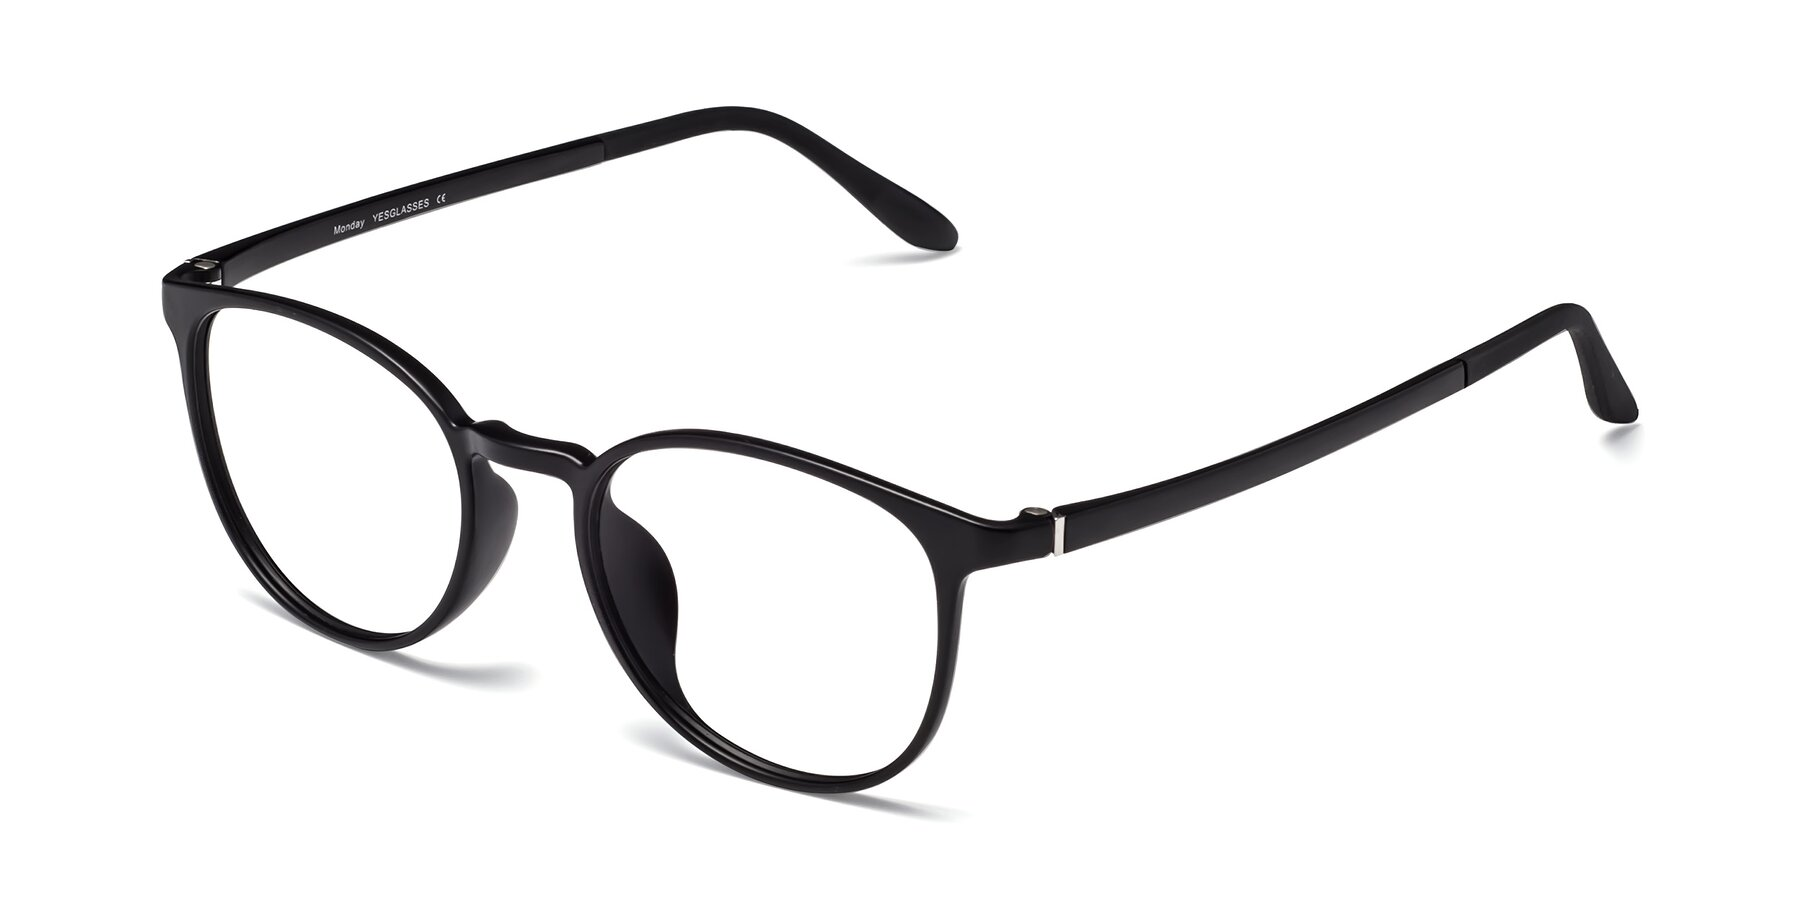 Angle of Monday in Matte Black with Clear Eyeglass Lenses